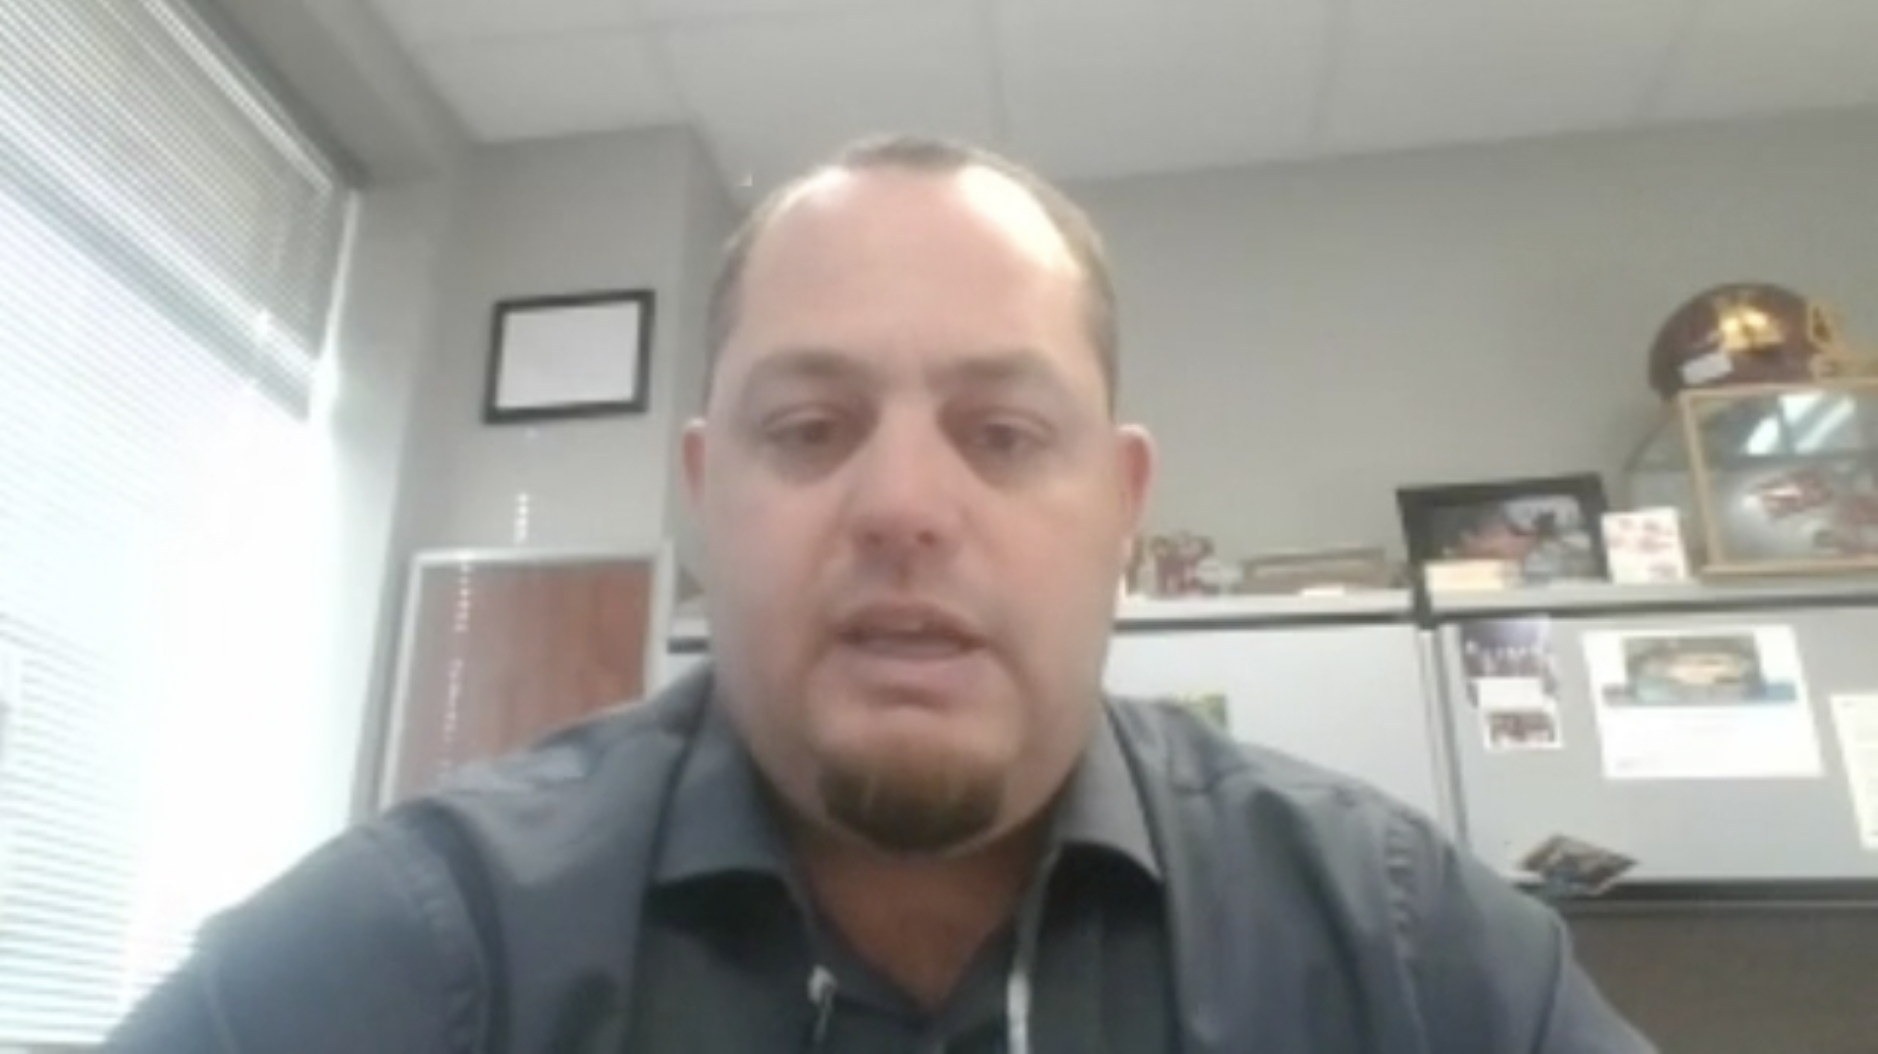 A virtual teacher zooms a lesson from their office.